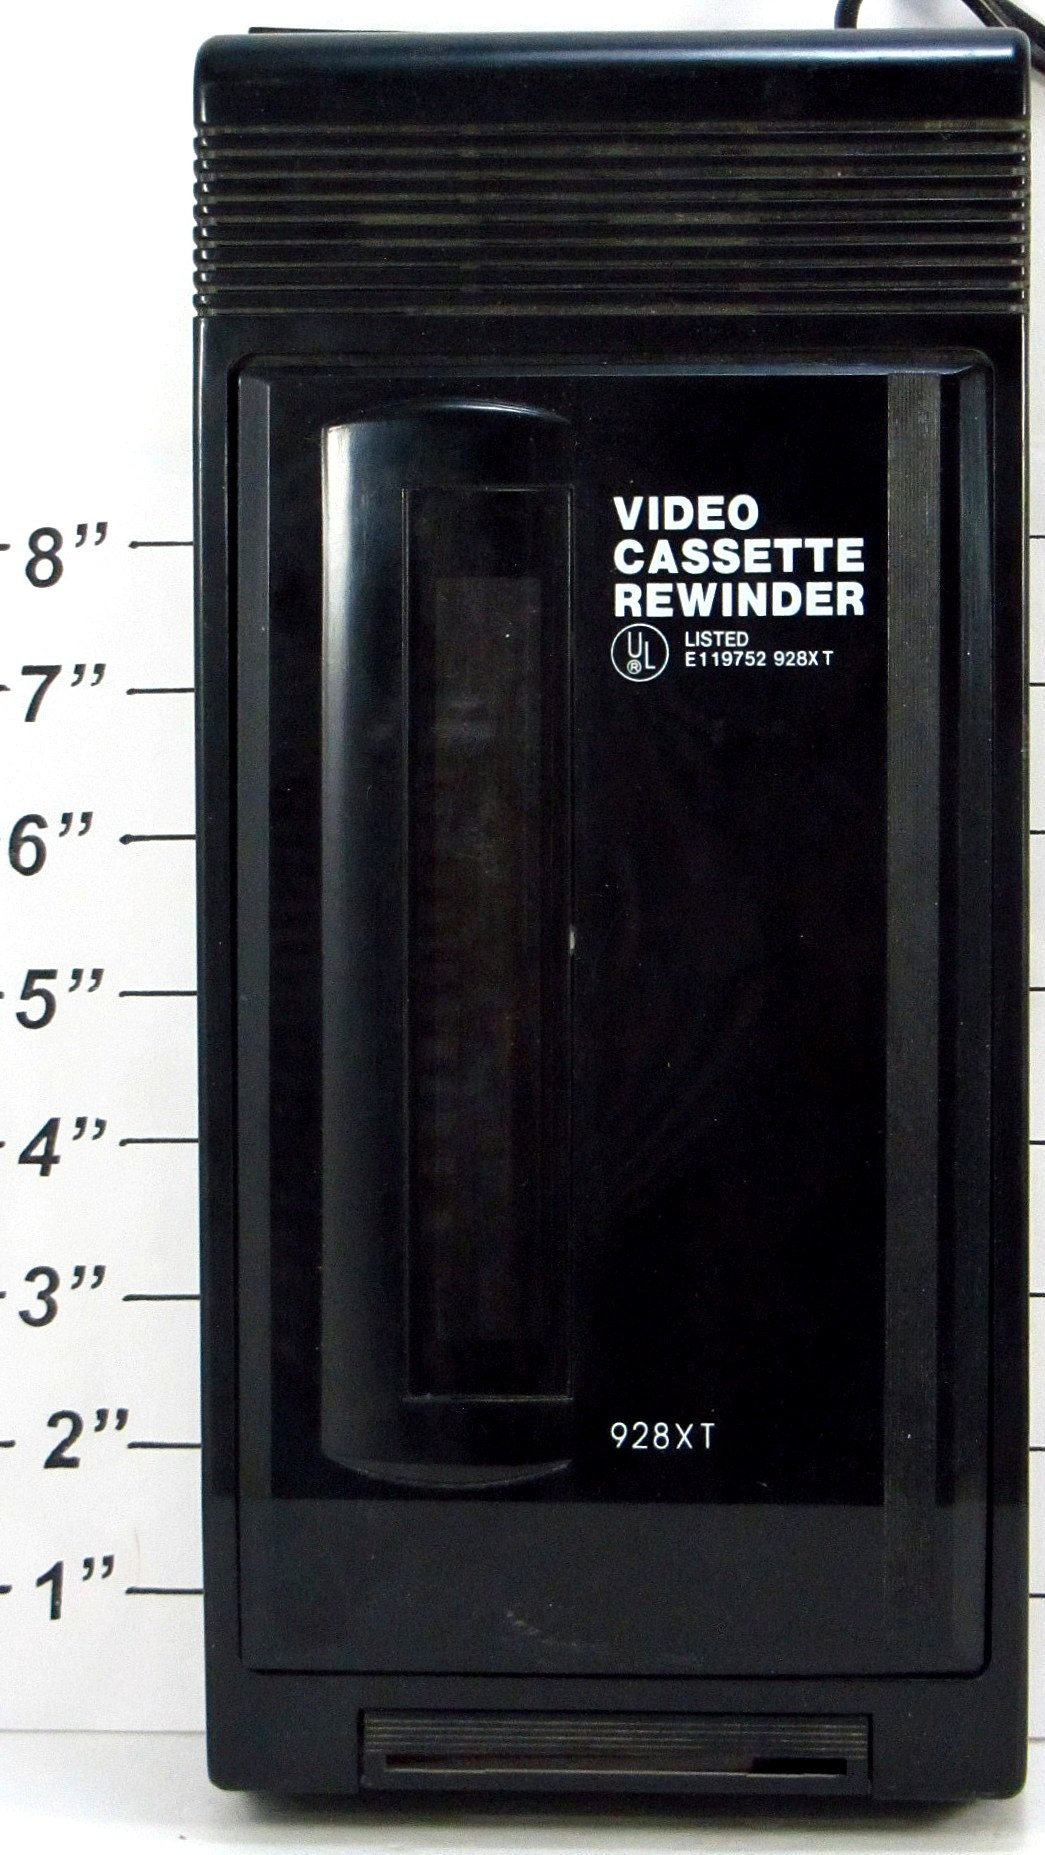 Amazon.com: Solidex 928XT VHS Video Cassette Rewinder, Black: Home Audio & Theater